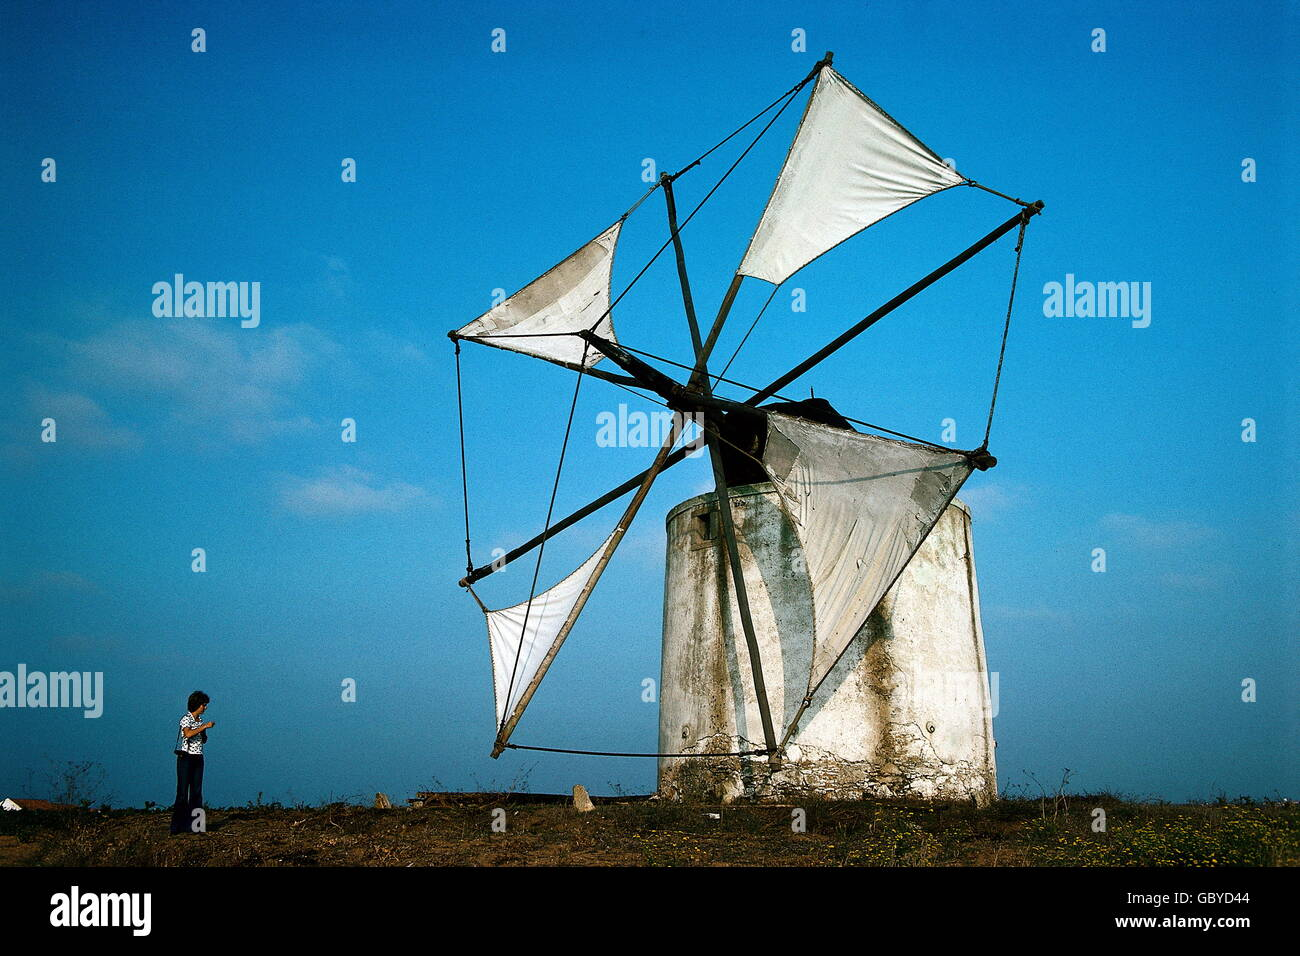 energy, wind power, windmill near Peniche, Portugal, 1975, Additional-Rights-Clearences-NA - Stock Image